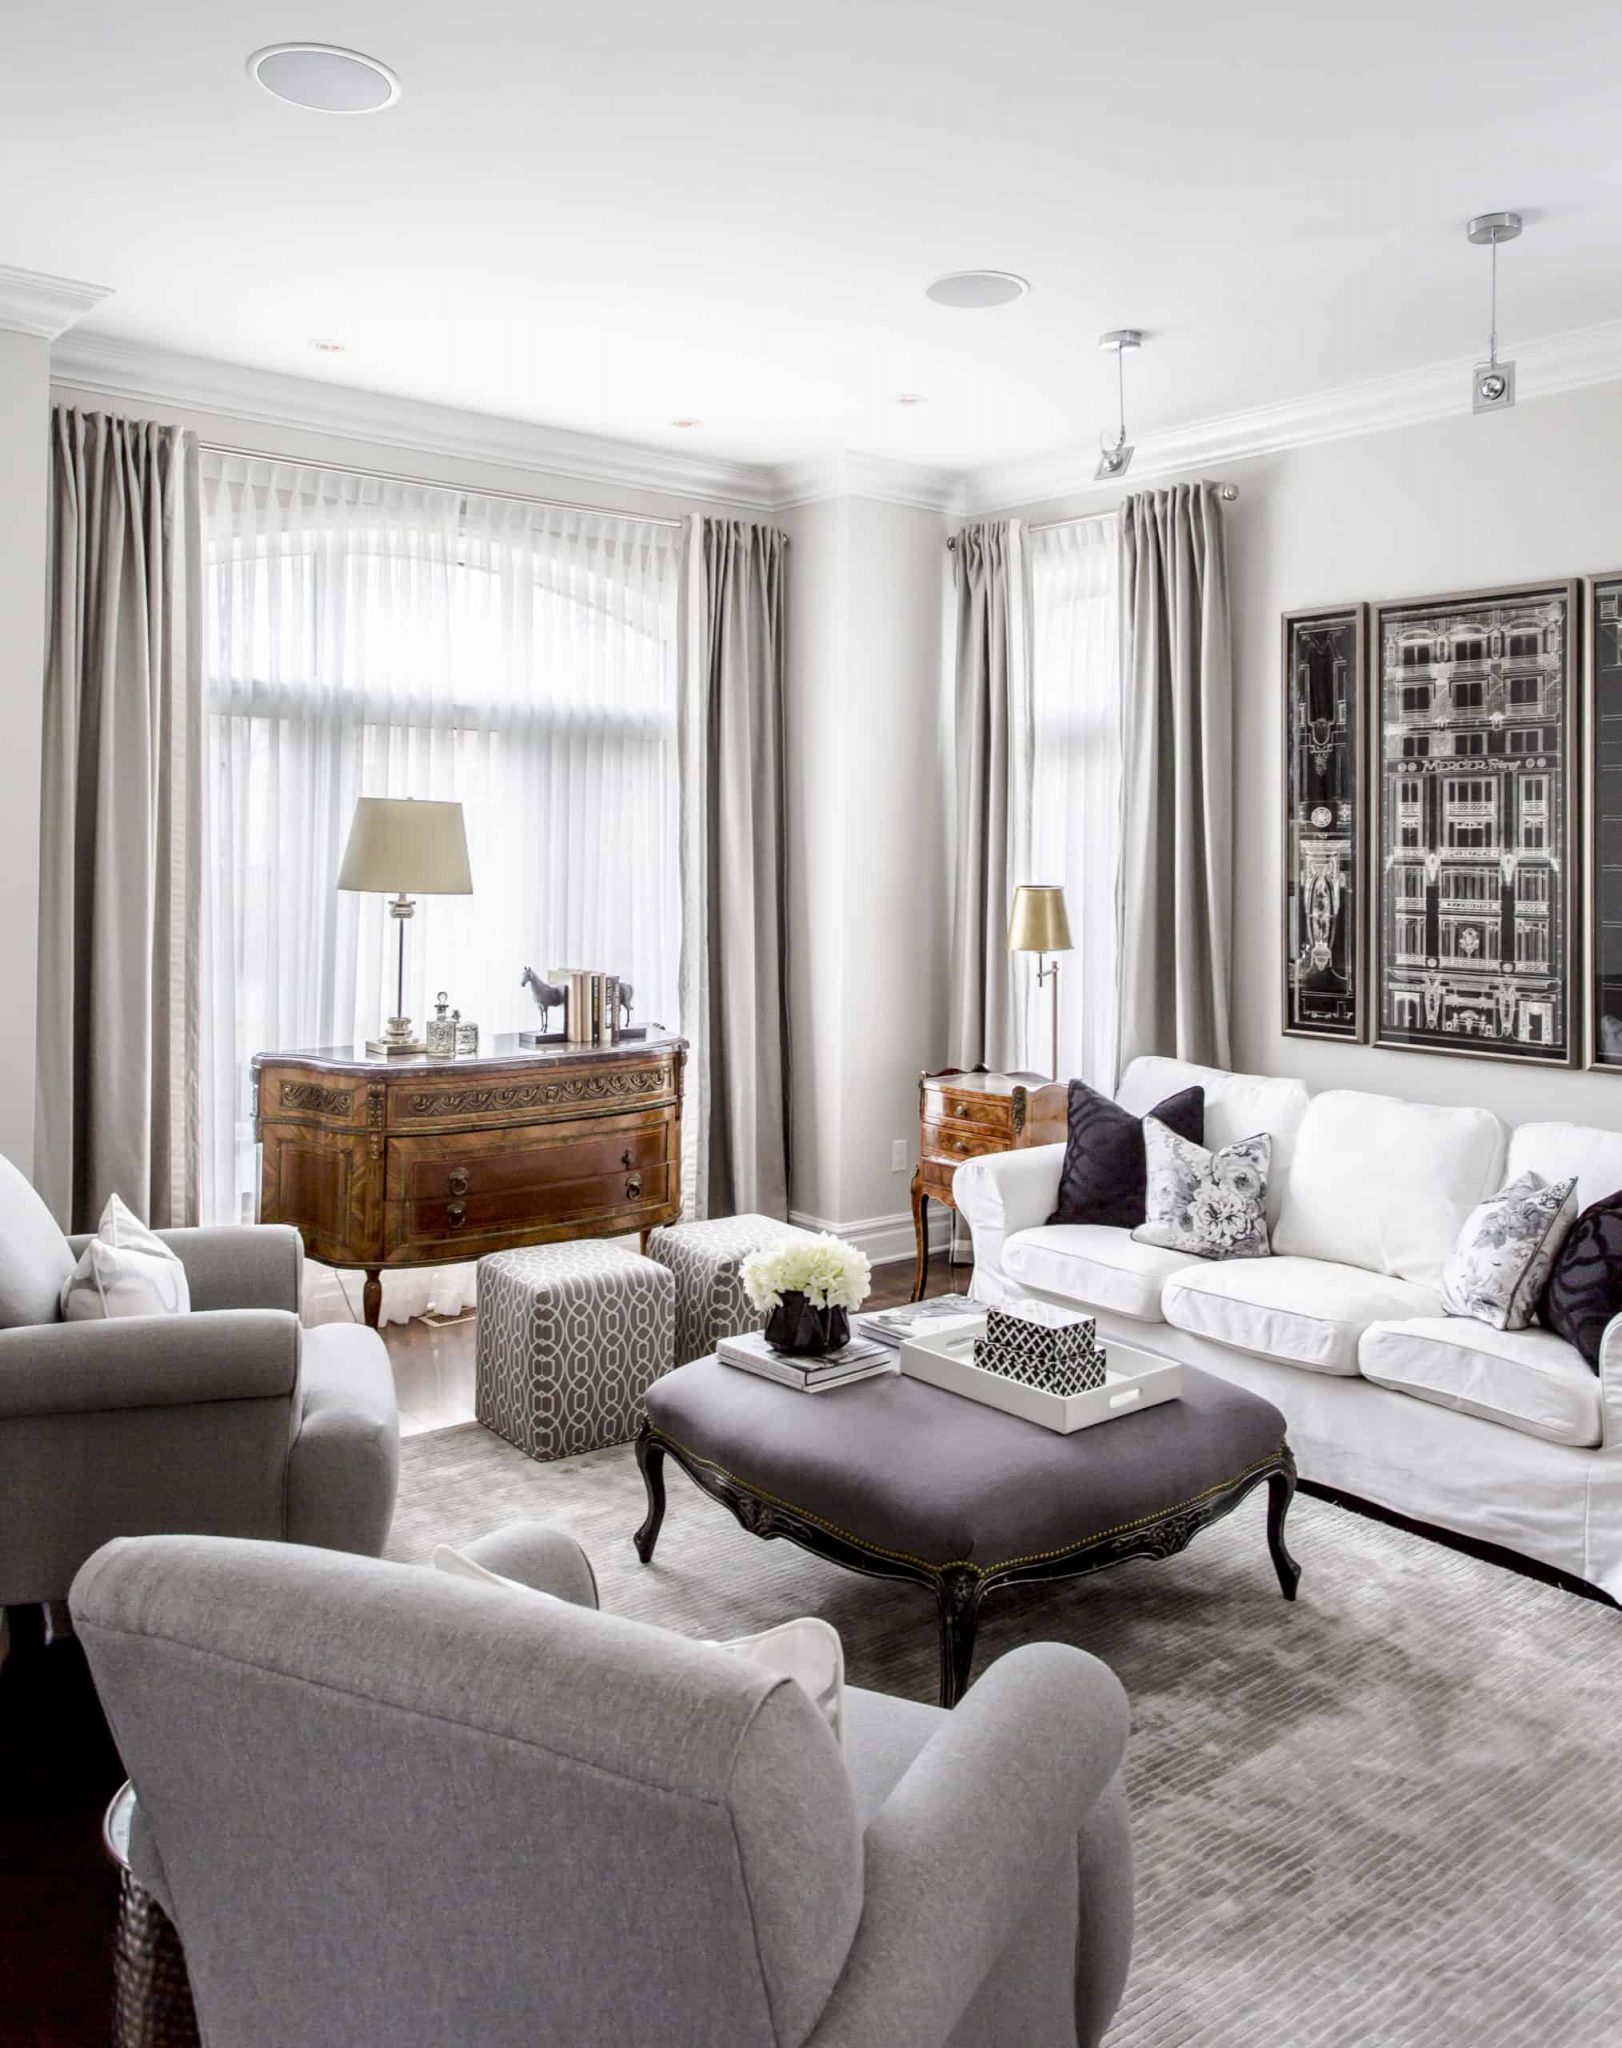 Large, open living room with a picture above the bright white couch